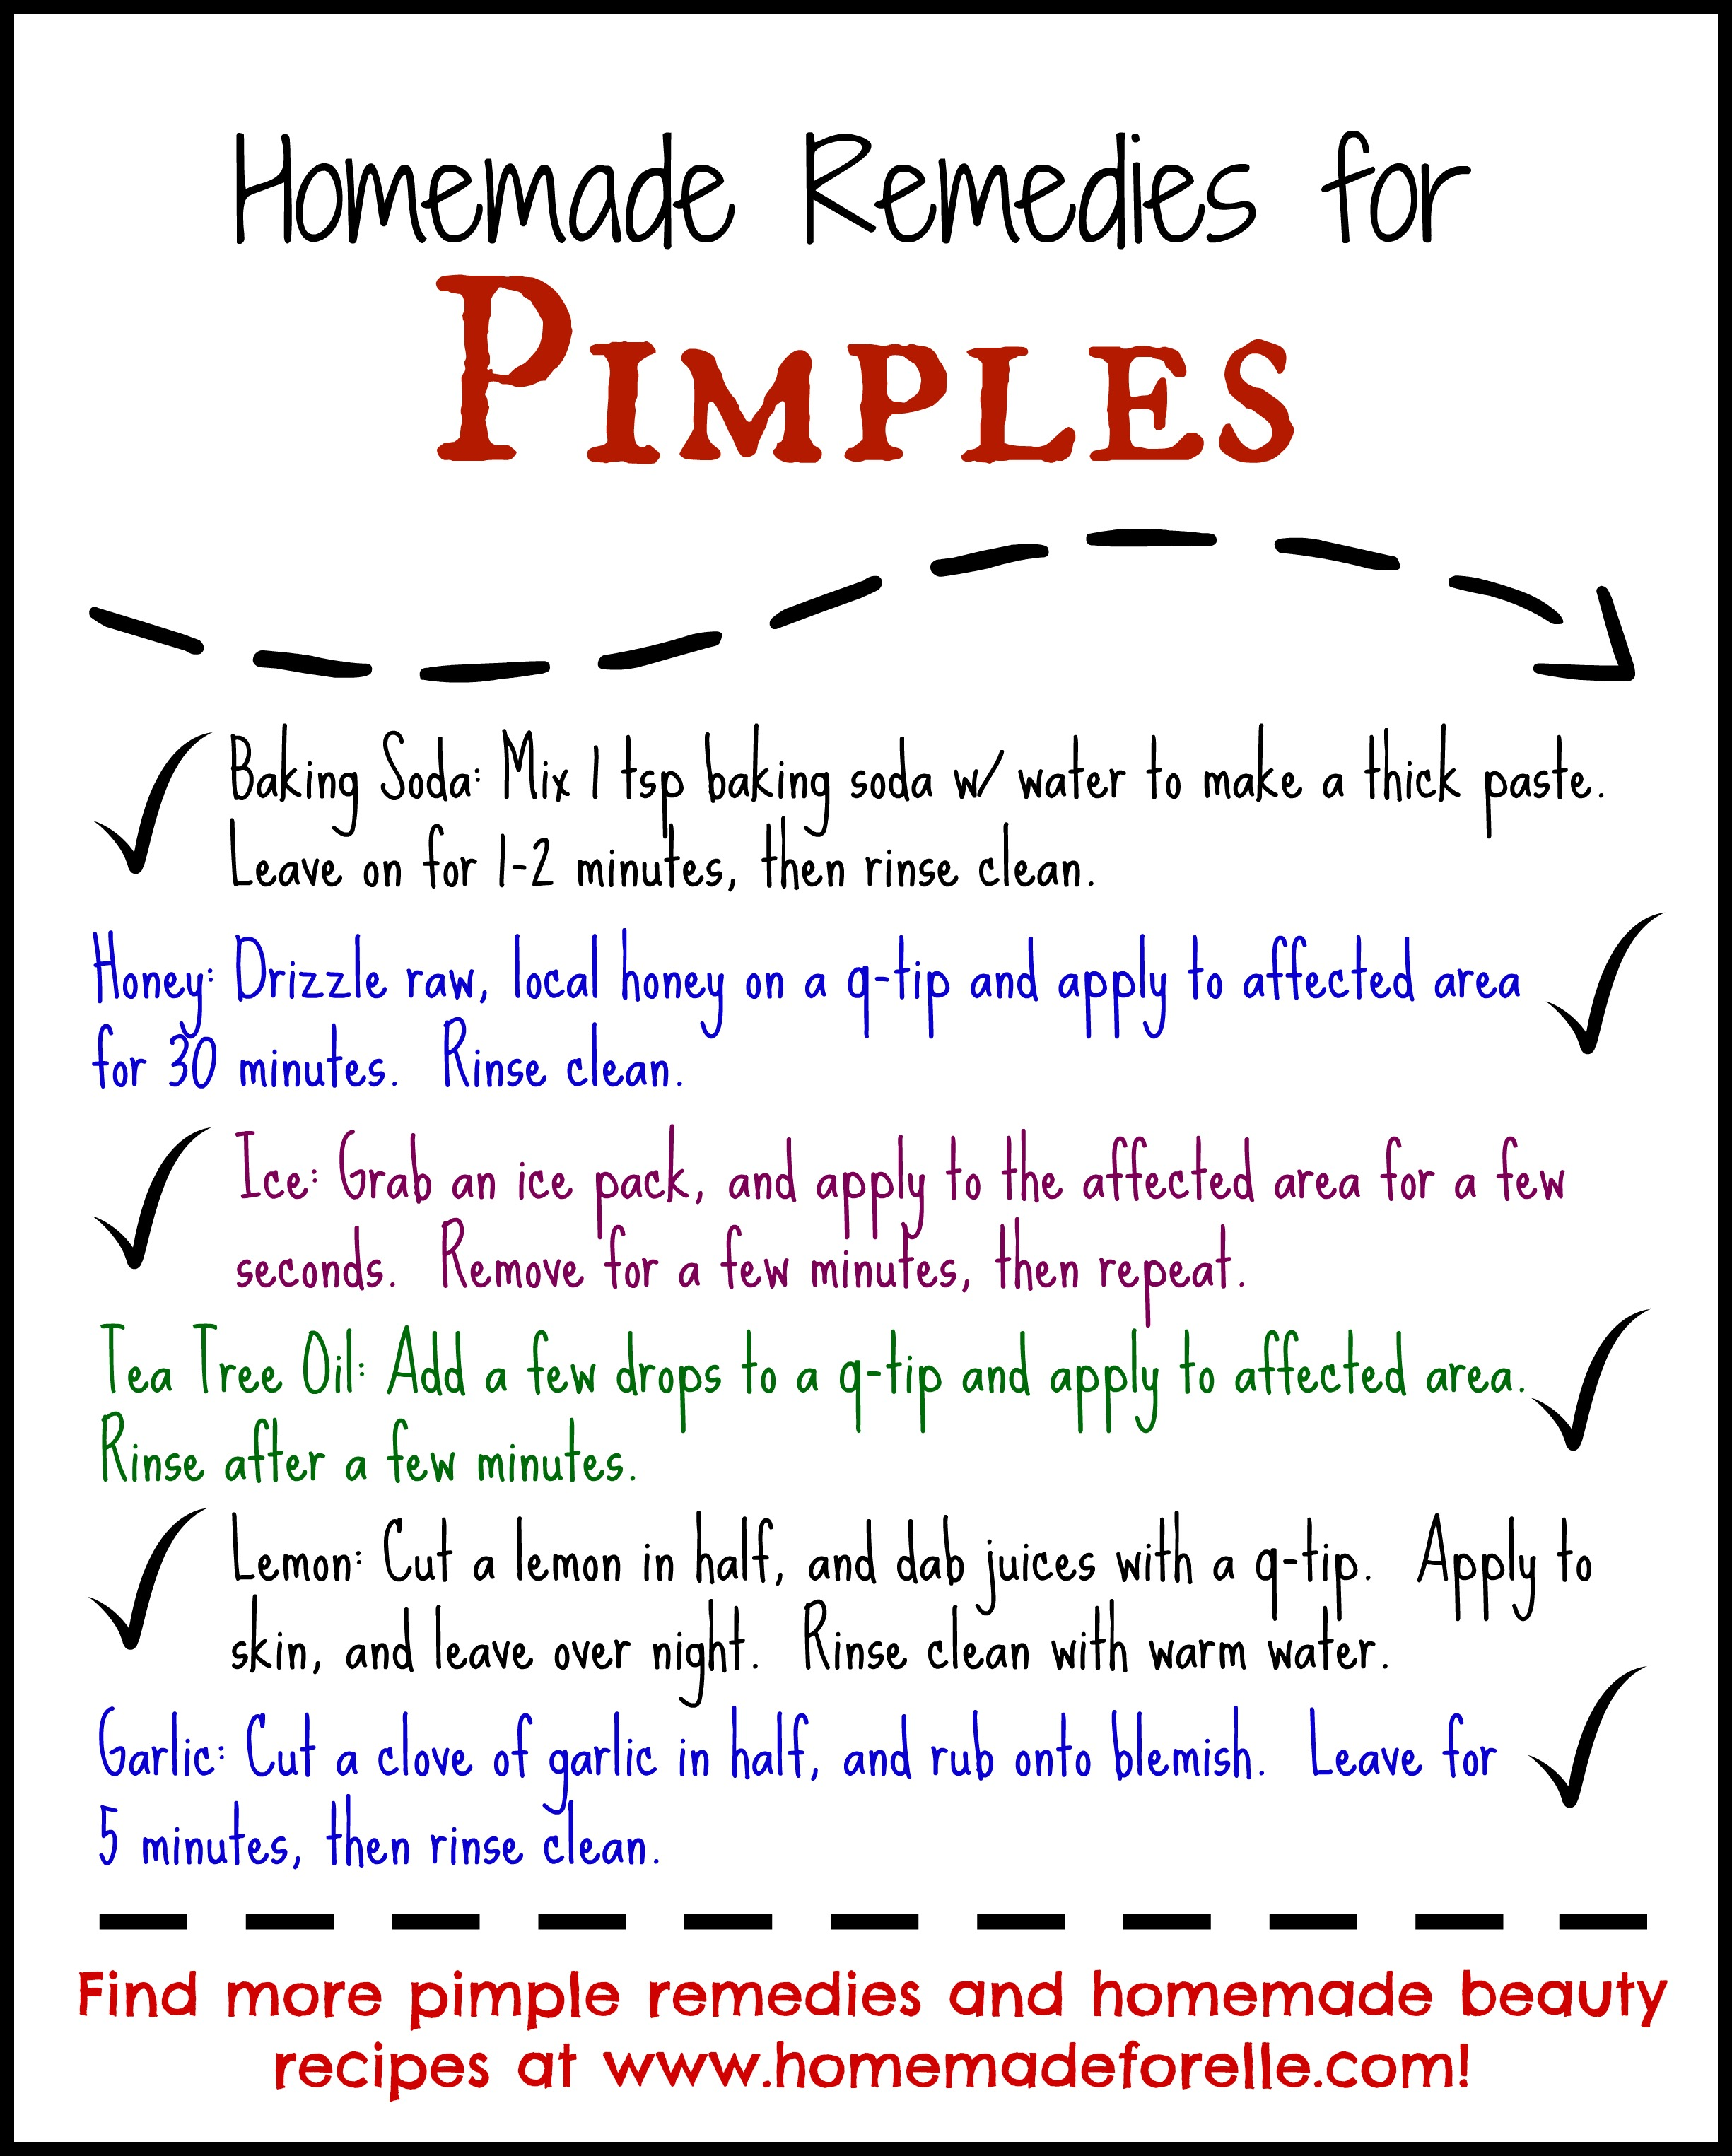 Homemade Beauty Tips for Pimples ⋆ Homemade for Elle